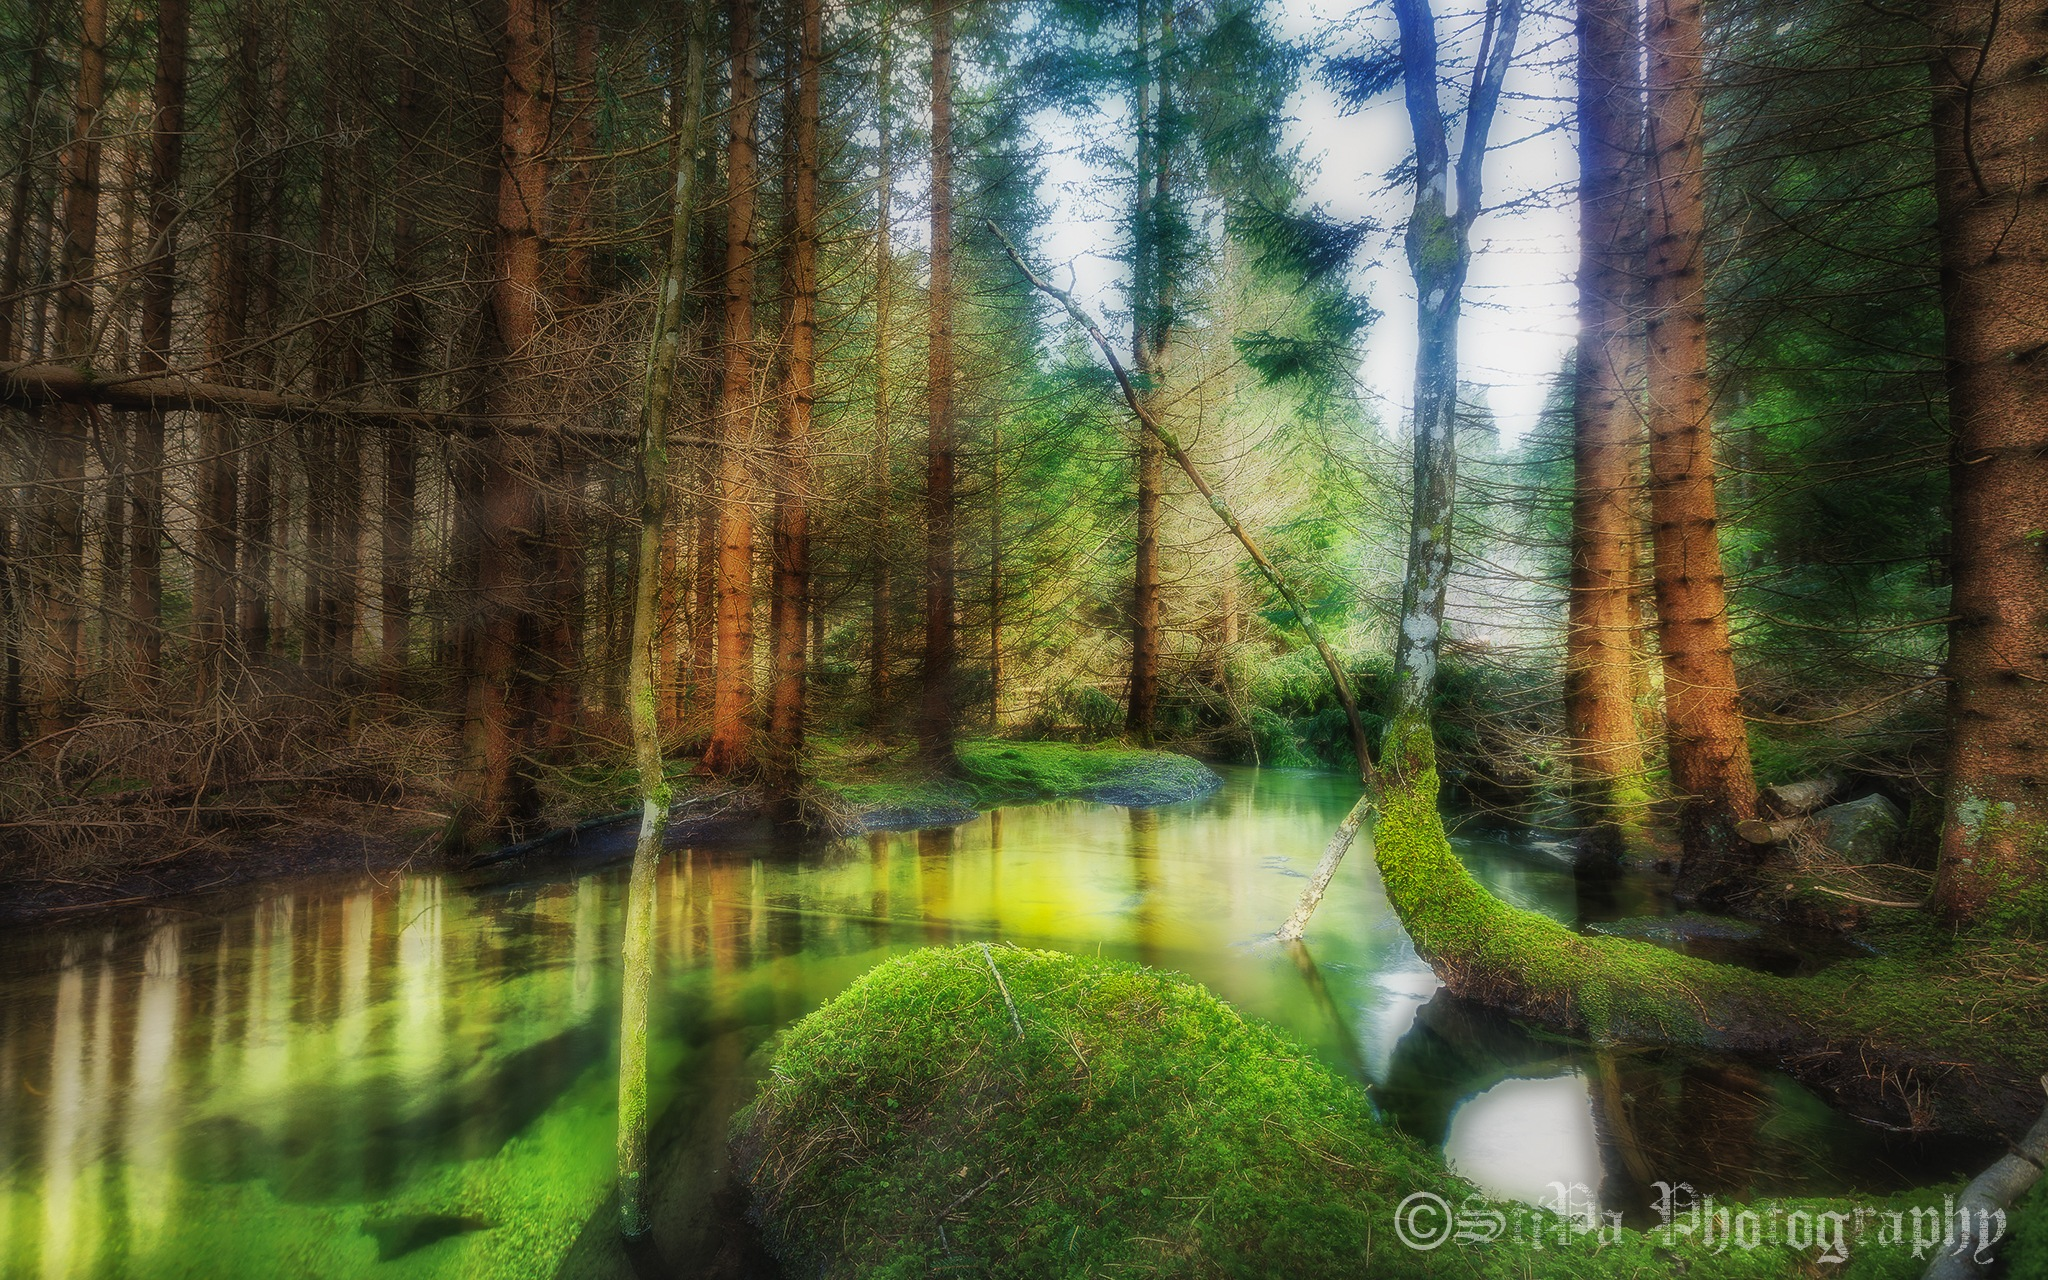 A stream in a forest by StiPa Photography